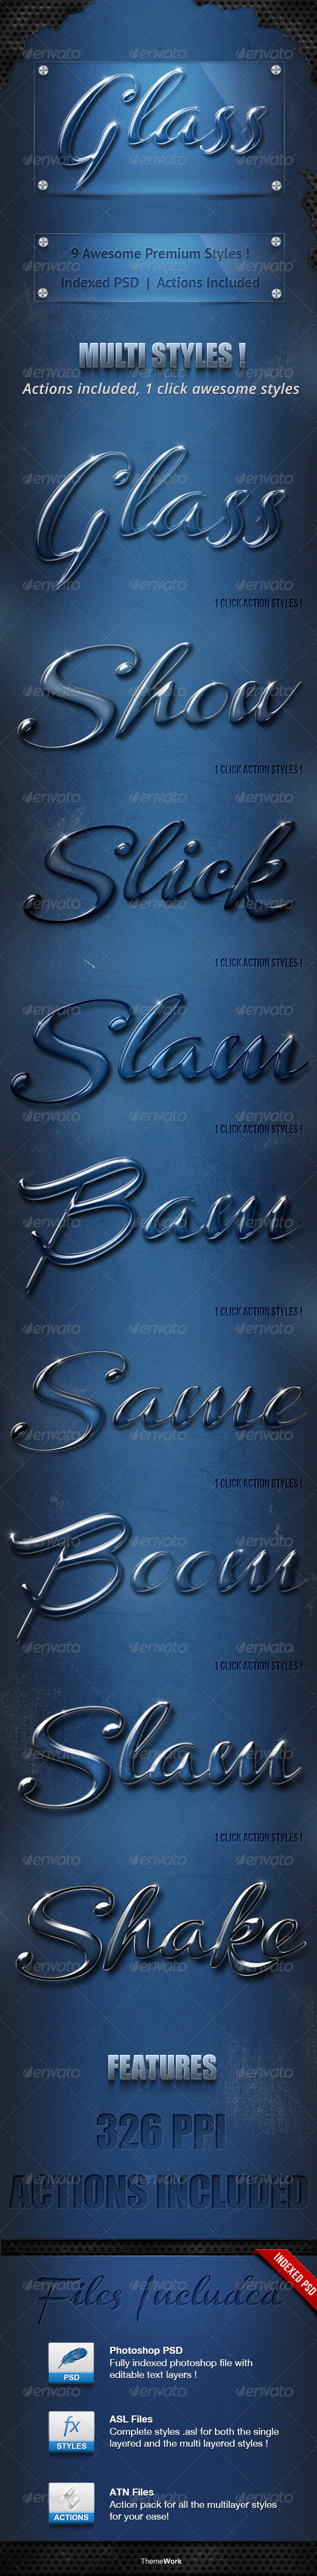 Glass & Crystal Premium Text Styles 2/2 - Text Effects Actions